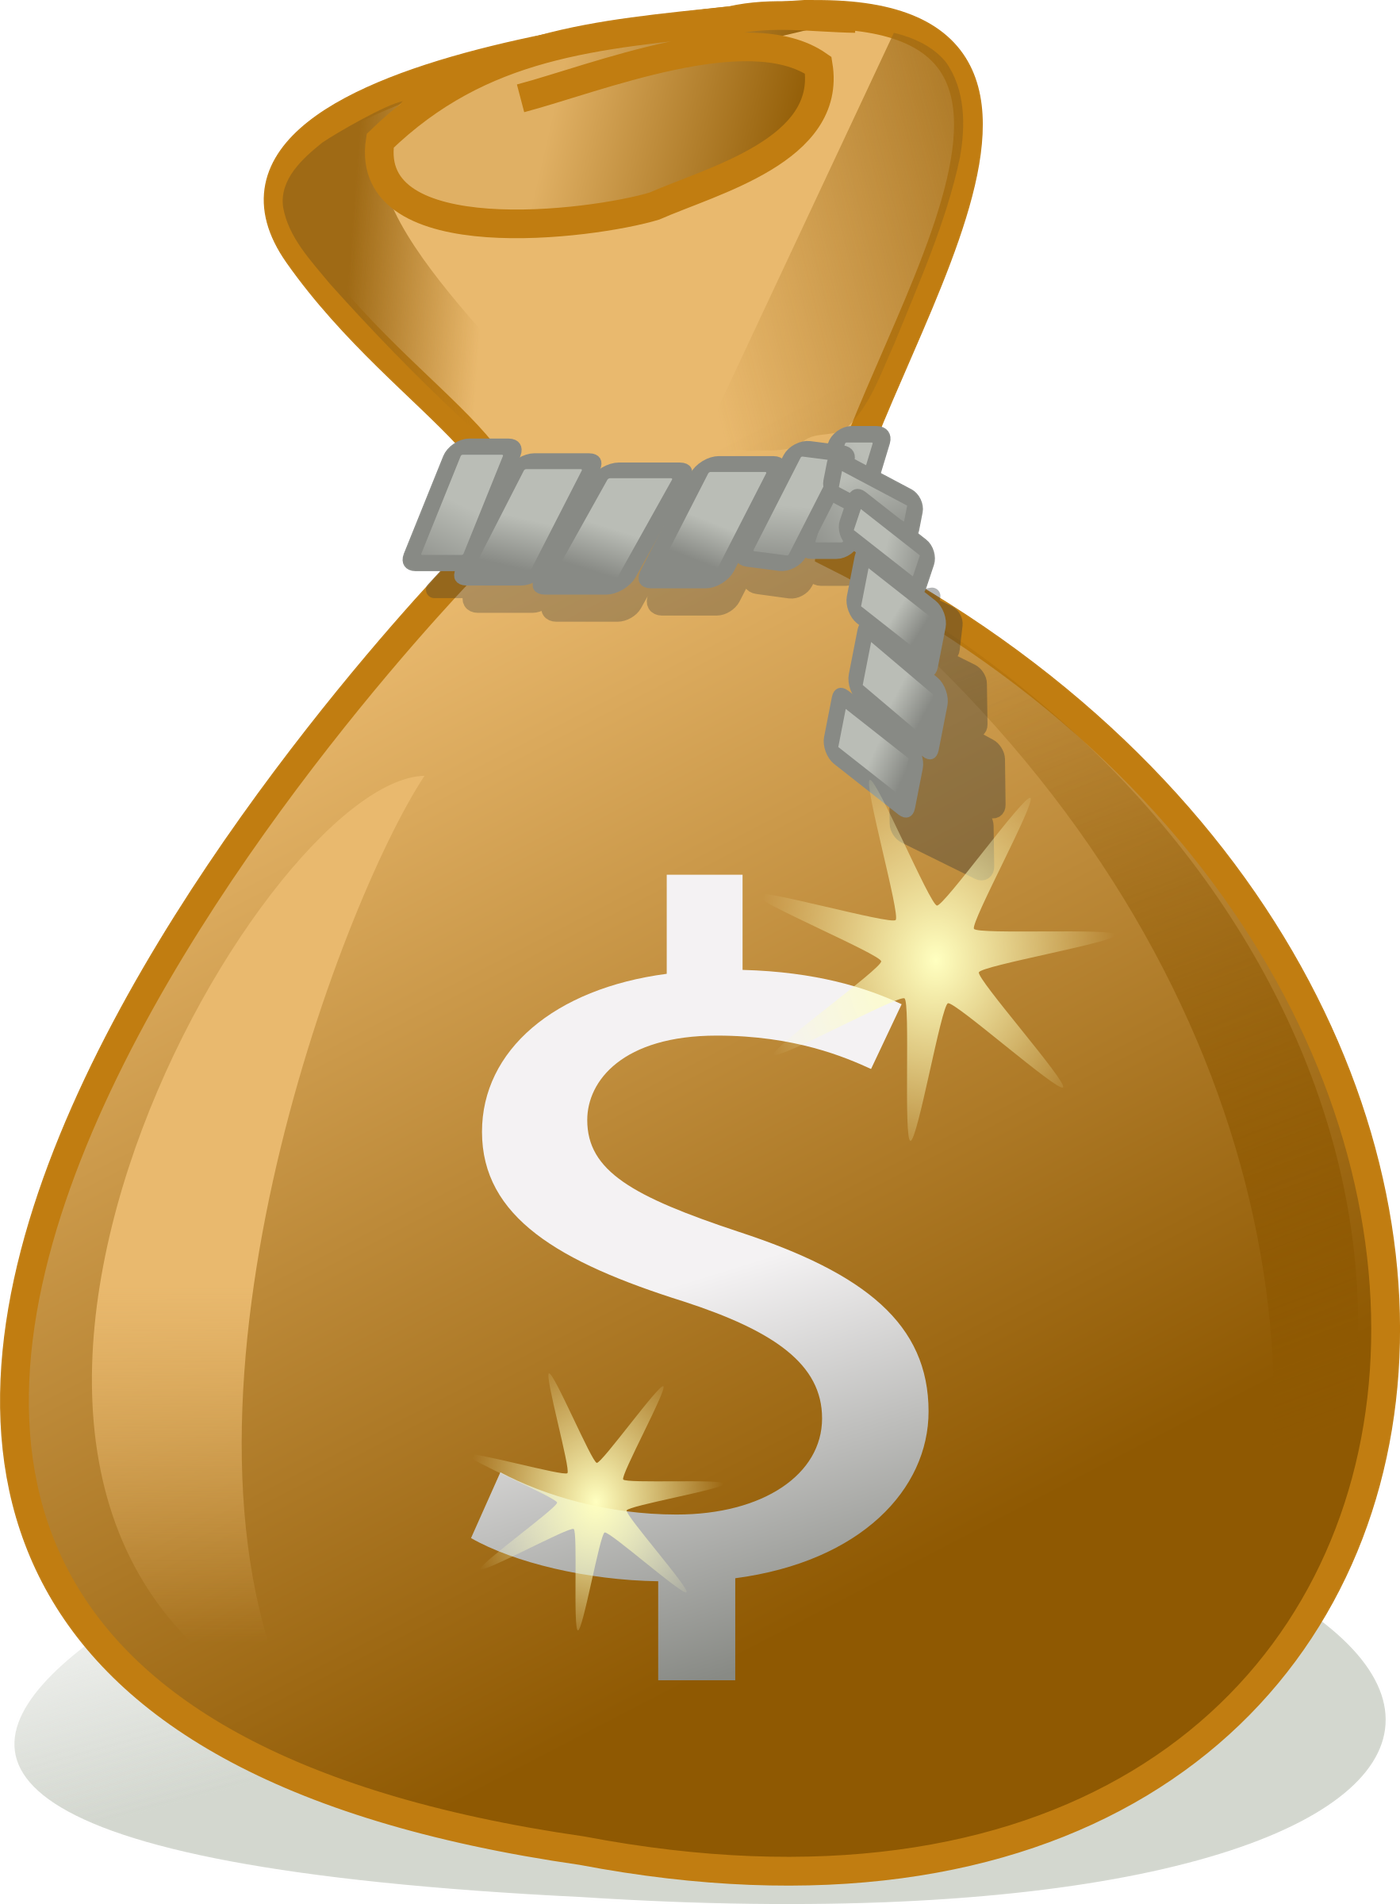 Money savings clipart jpg library library Tired of obsessing about money | Gail's Blog jpg library library